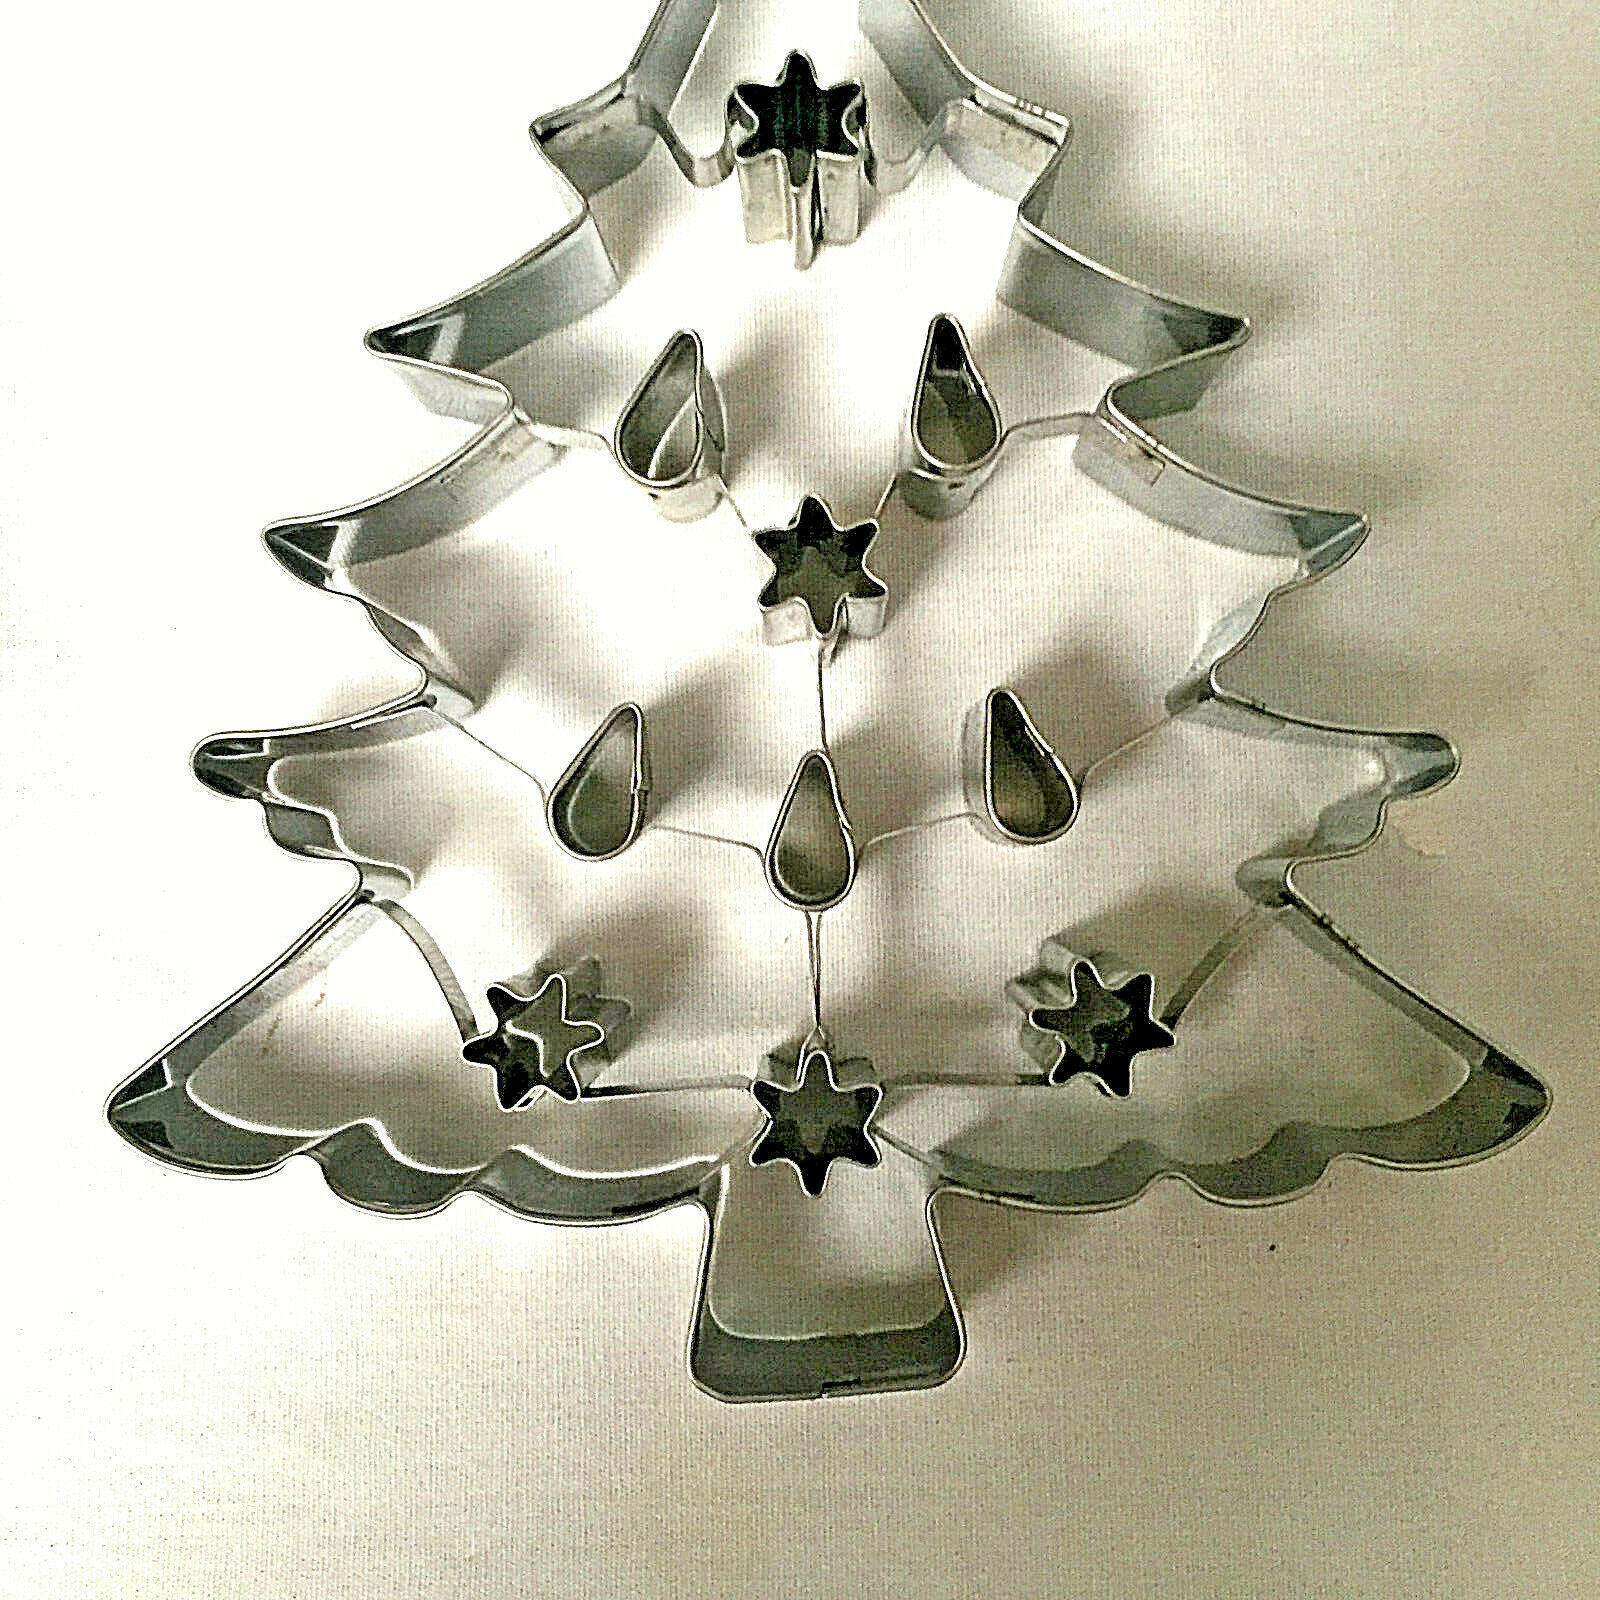 Christmas Tree Cookie Cutter Williams Sonoma Large Alunimum 8 Inches image 2